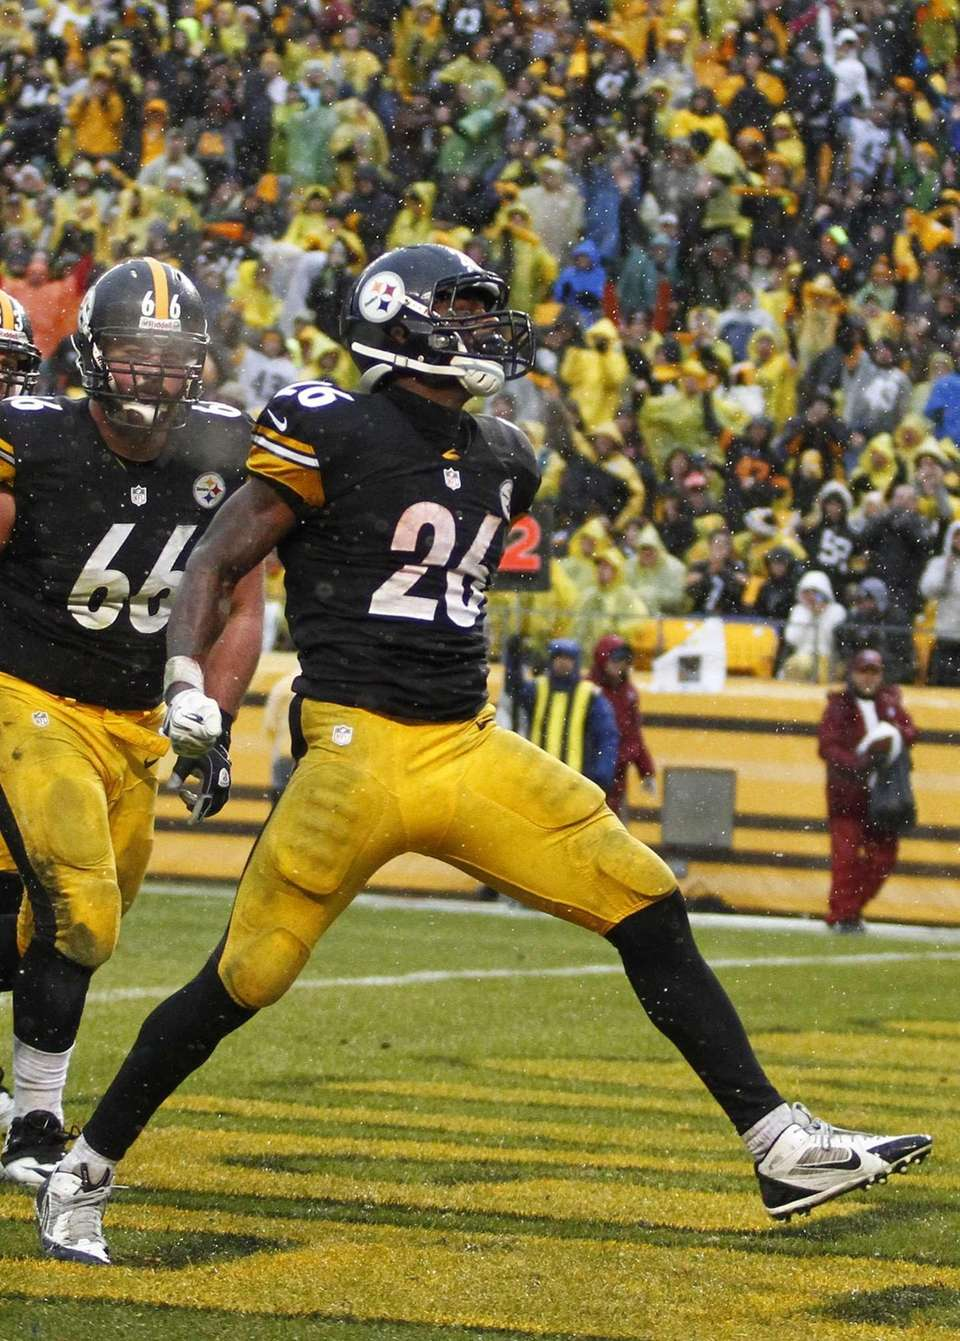 Le'Veon Bell #26 of the Pittsburgh Steelers celebrates